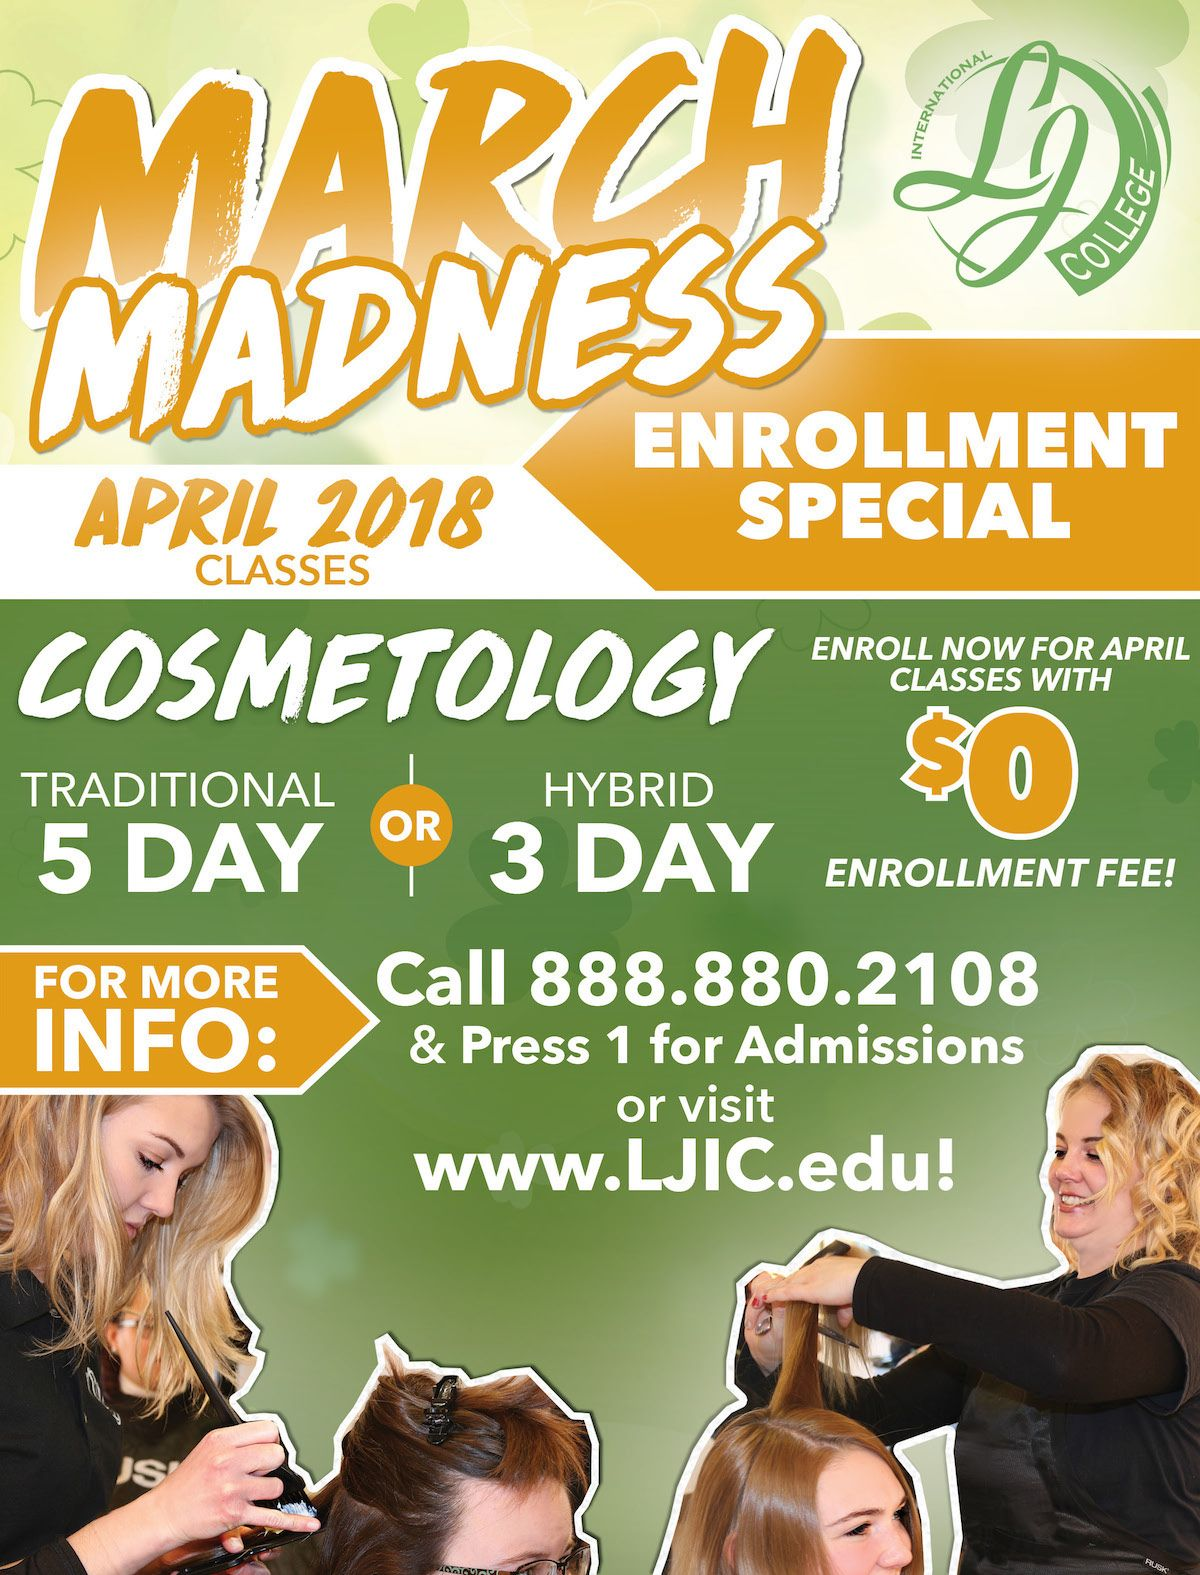 What's happening in March at LJIC you ask?... March